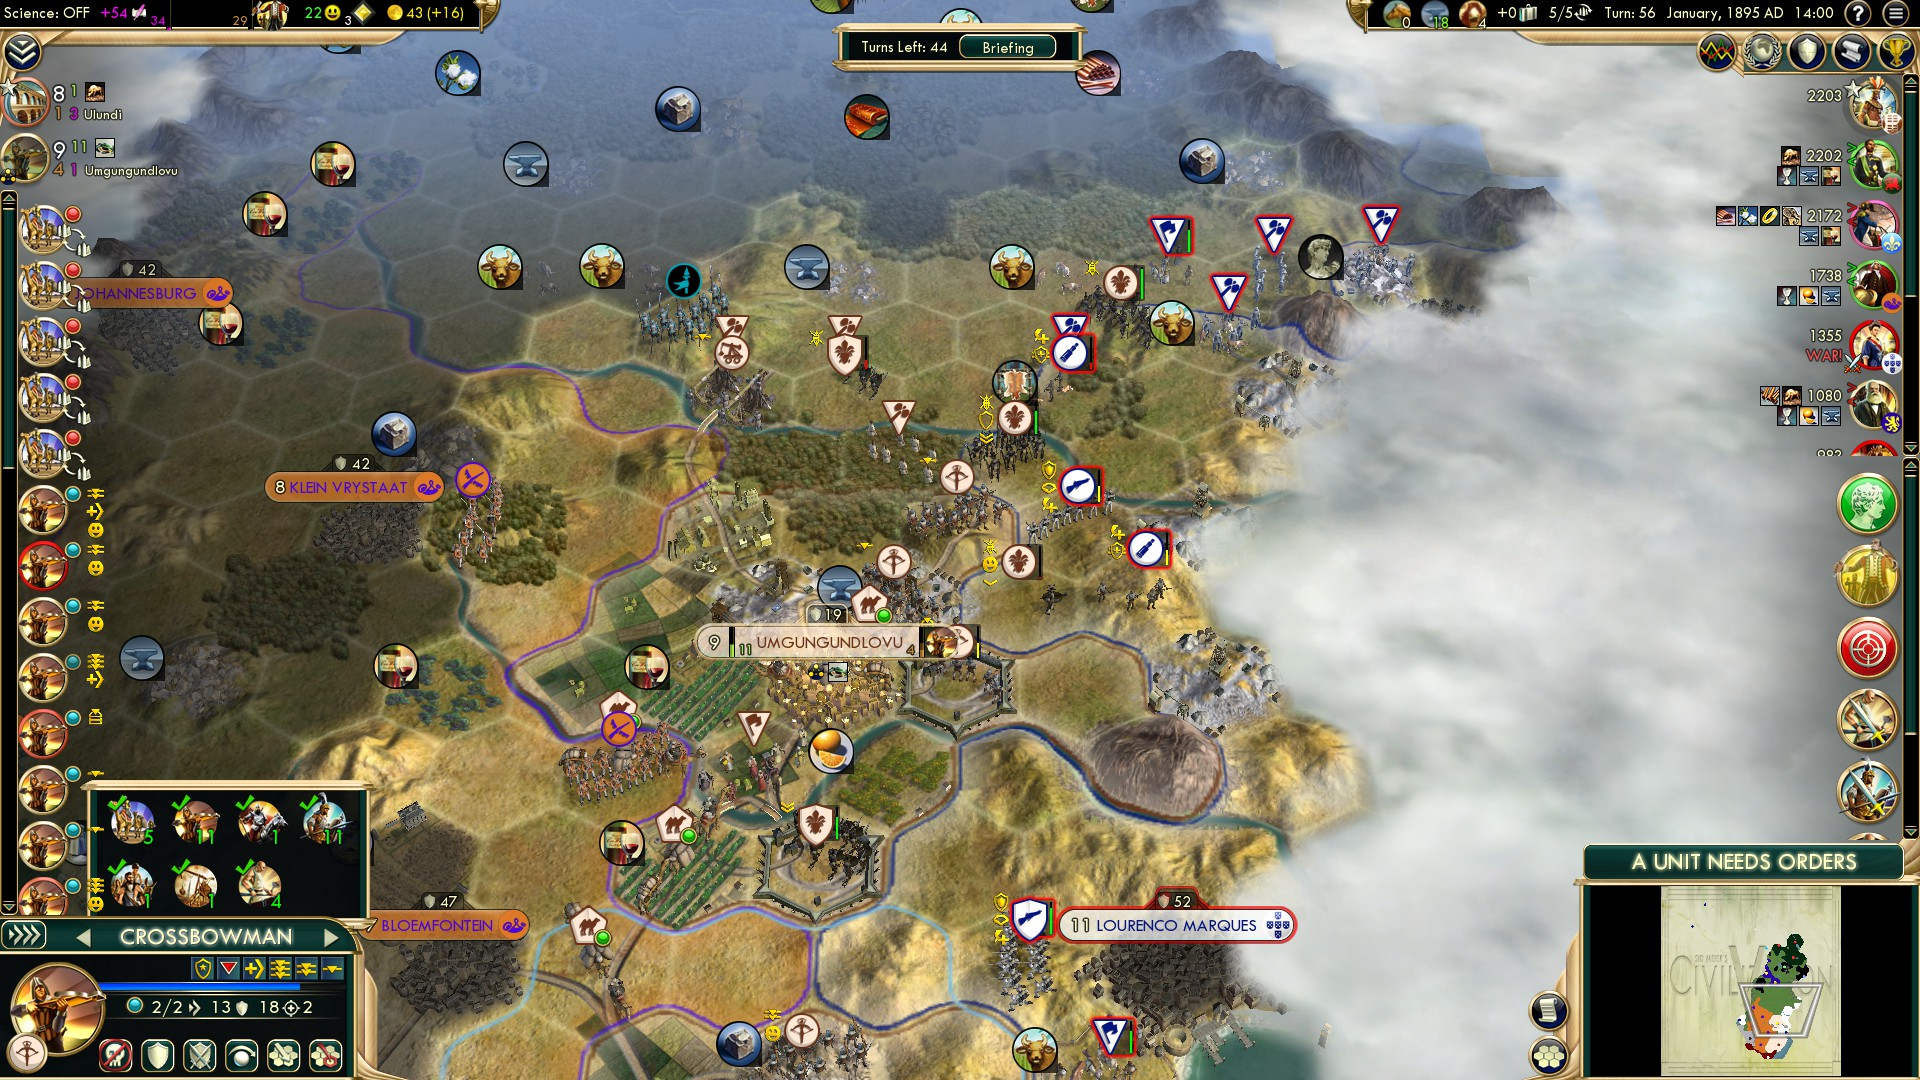 Civilization 5 Scramble for Africa Zulu Deity - Reload and capture those settlers